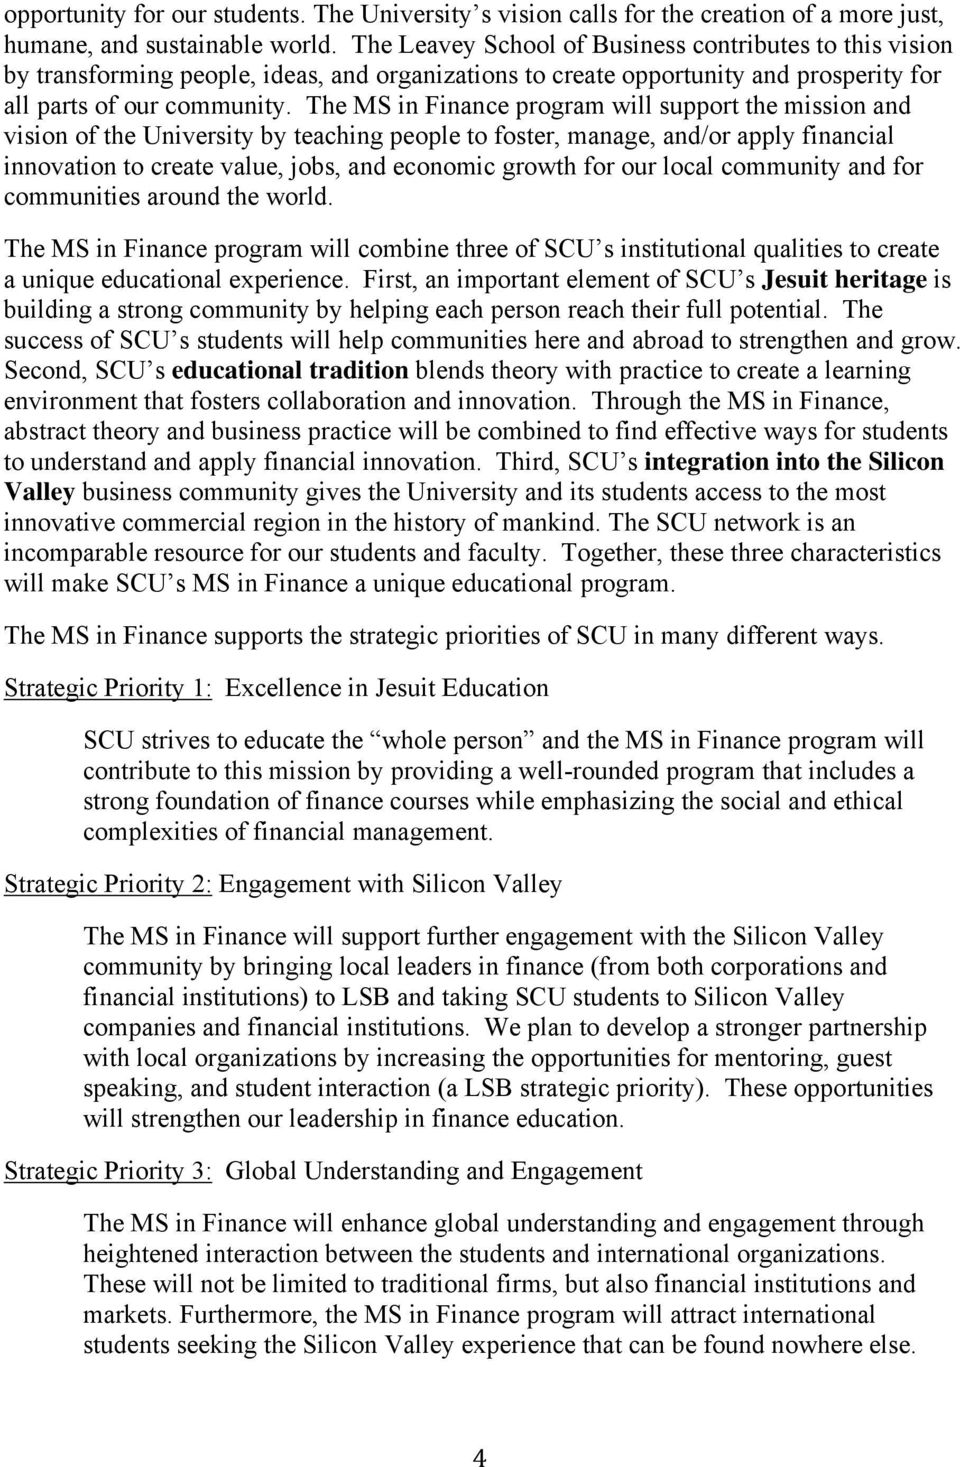 The MS in Finance program will support the mission and vision of the University by teaching people to foster, manage, and/or apply financial innovation to create value, jobs, and economic growth for